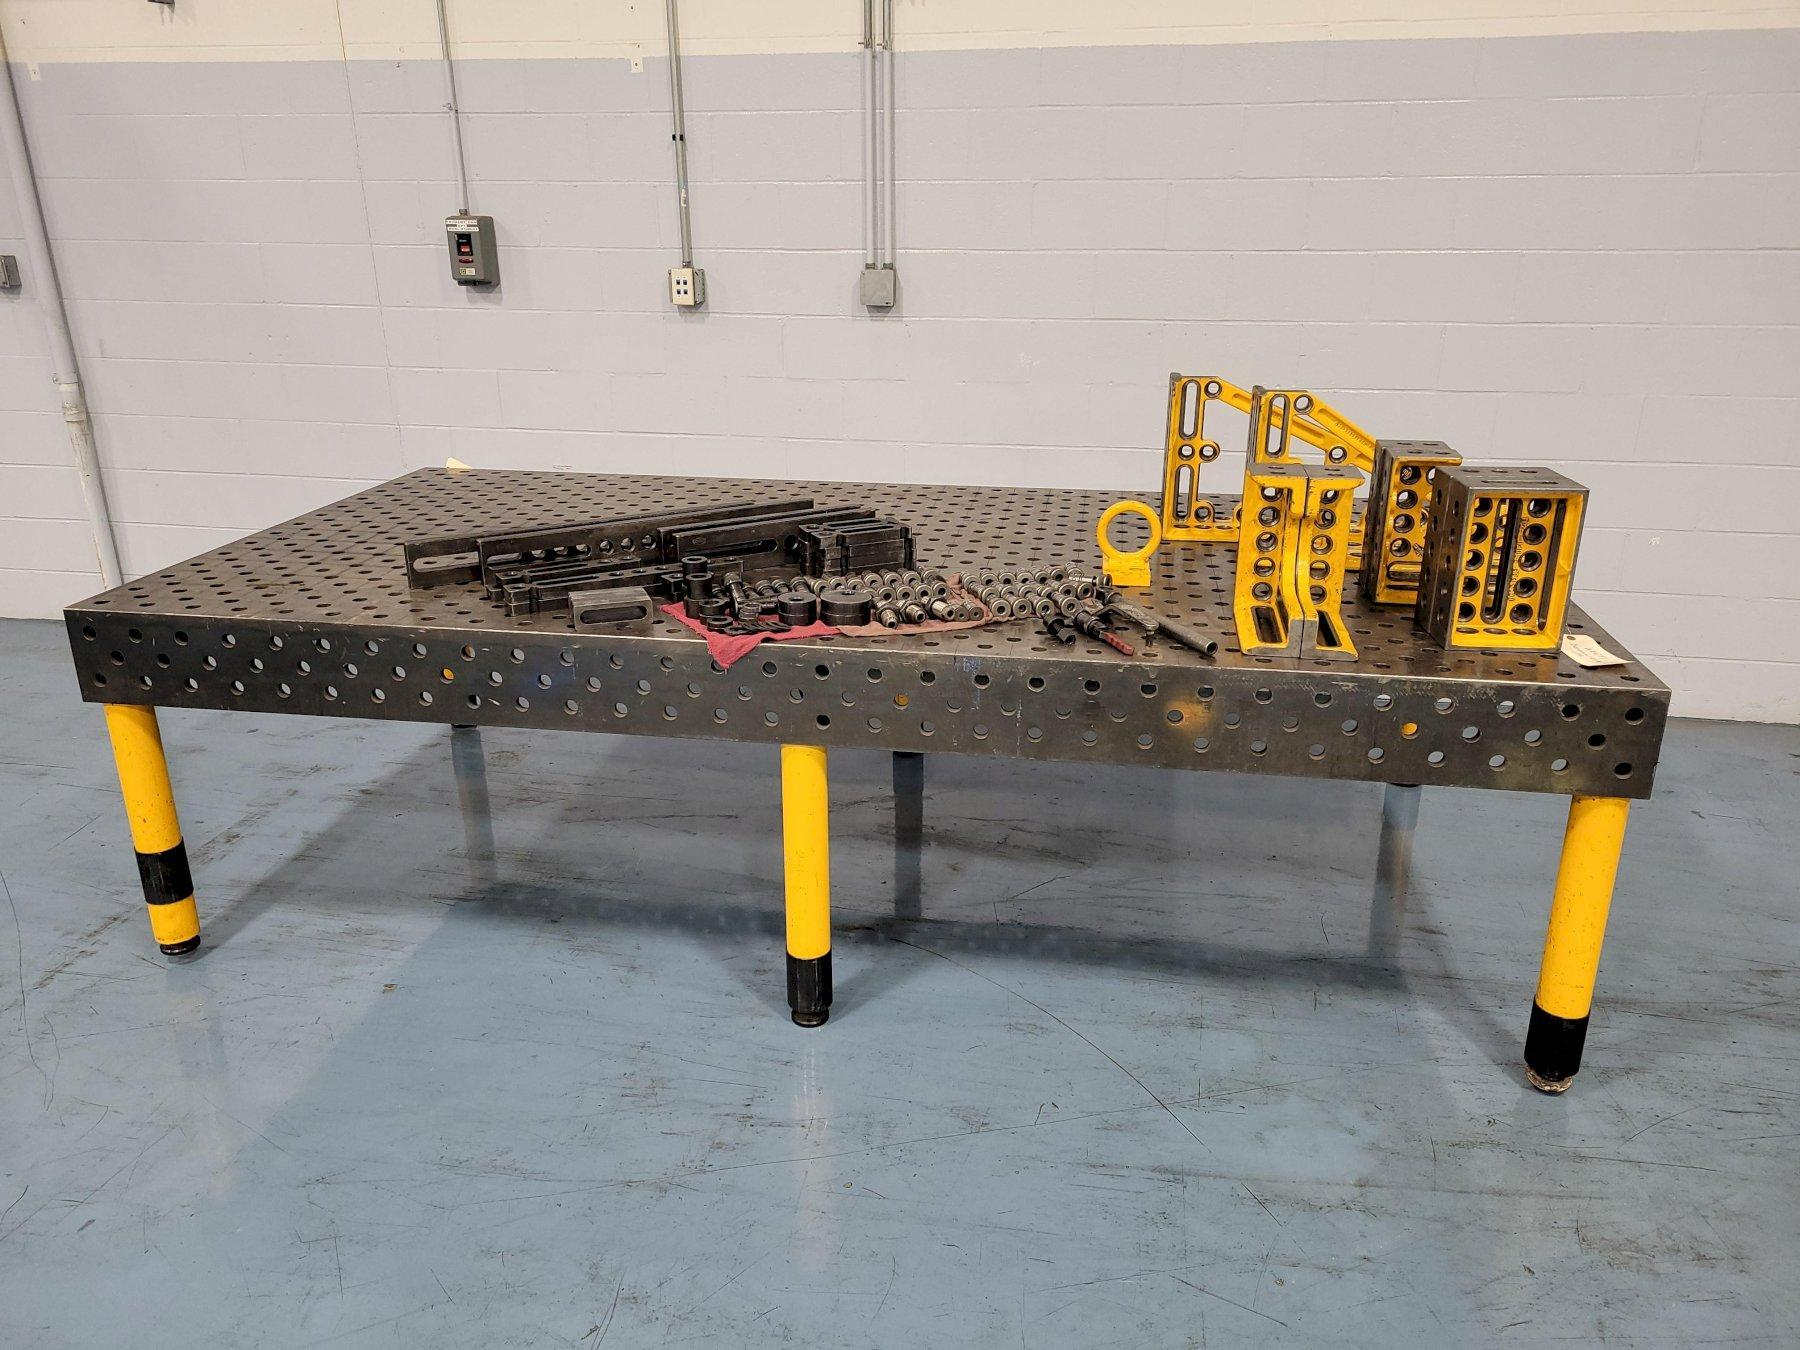 3000mm x 1500mm Demmeler Type 3D 1004 Welding Table with D28 Tooling Package NEW-2006. Equipped with Angles, Spacer Blocks, Locating Disks, Universal Stops, Stop Strips and Clamping Pins.